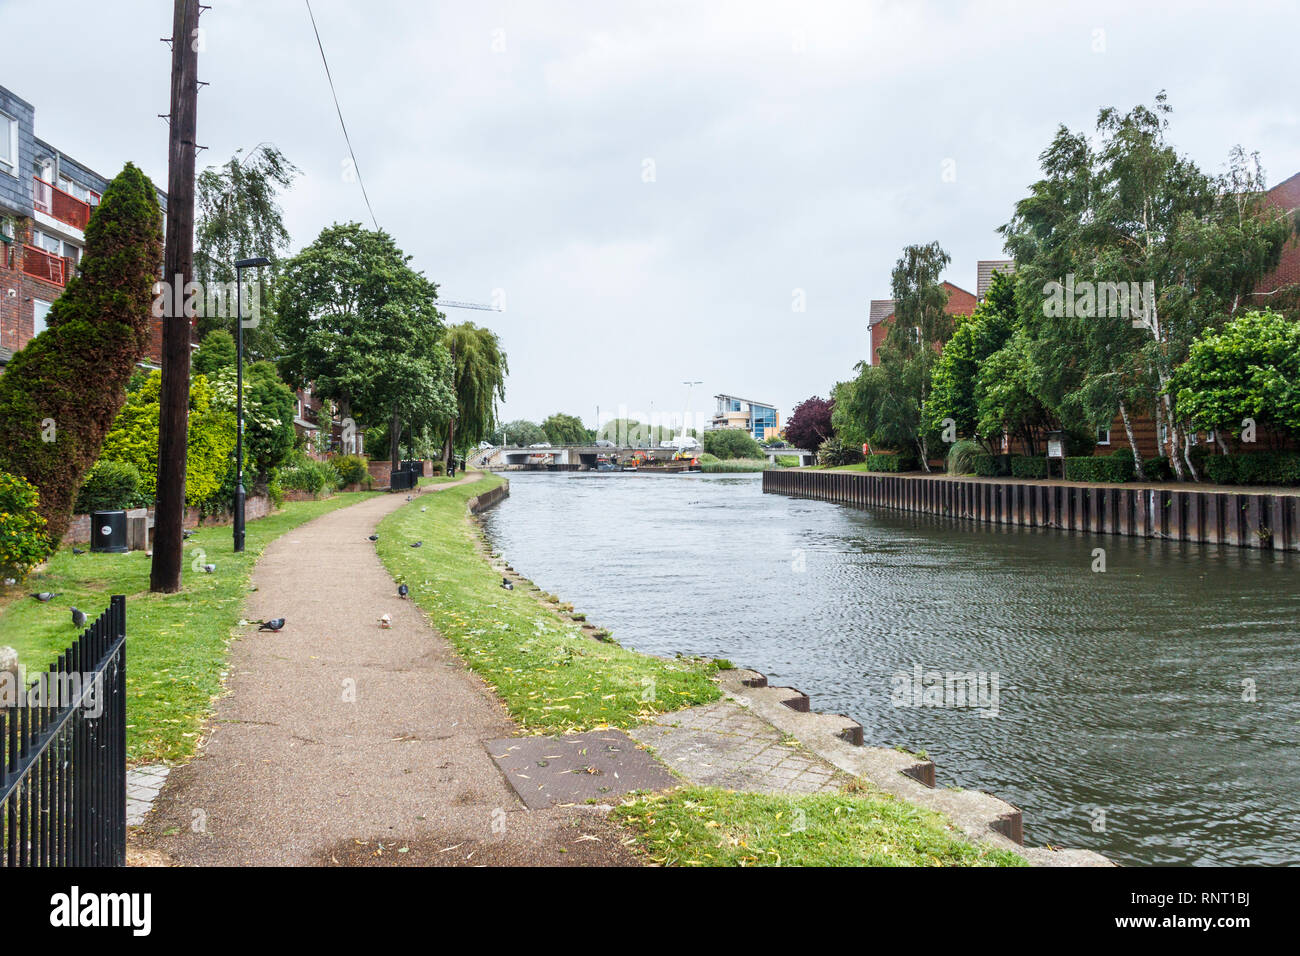 The River Lea in Tottenham, London, UK, looking North, Ferry Lane bridge in the background Stock Photo